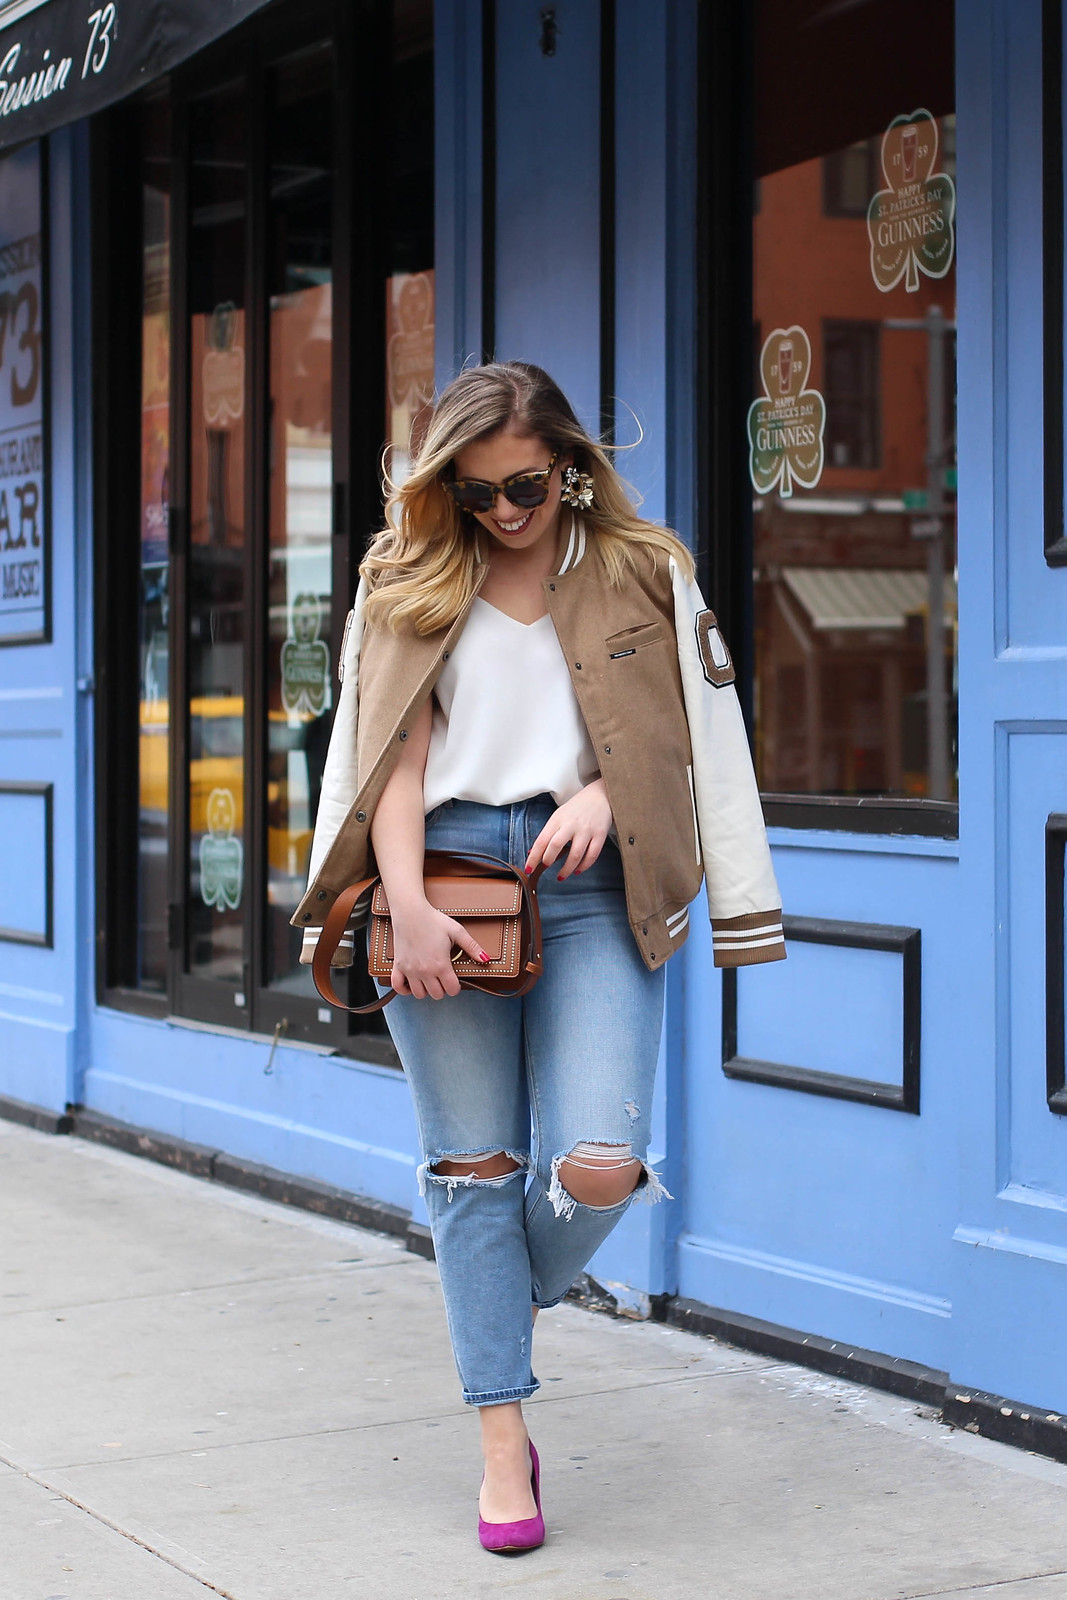 Are Varsity Jackets in Style in 2018? Living After Midnite Jackie Giardina NY Style Fashion Blogger